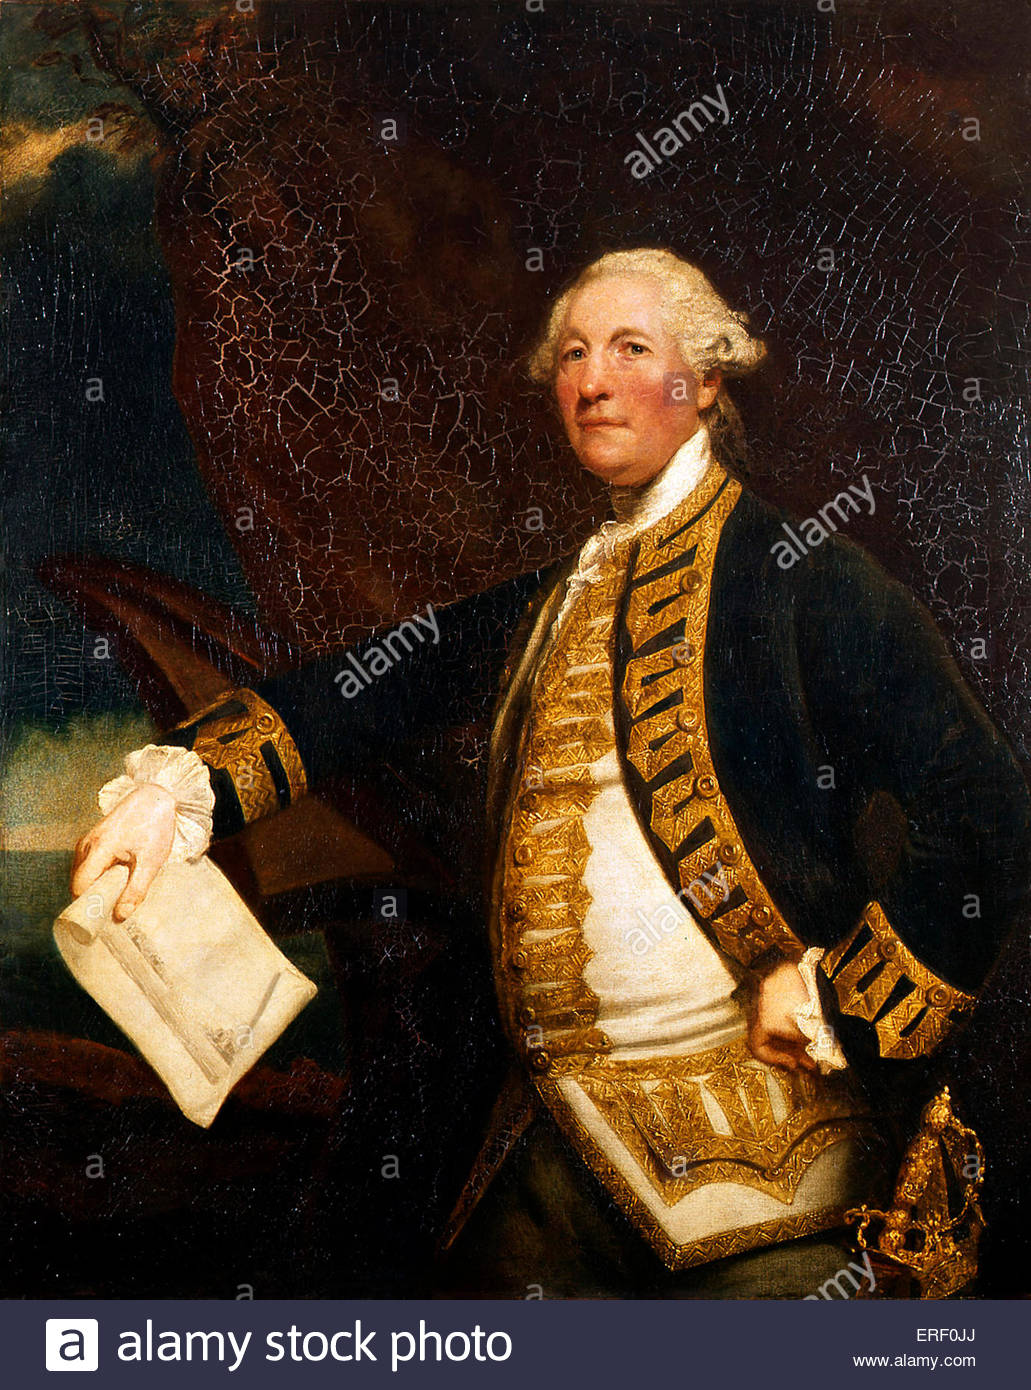 Commodore Sir William James by Joshua Reynolds, 1784. Oil on canvas, 1270 mm x 1015 mm. WJ: Sir William James, 1st - Stock Image